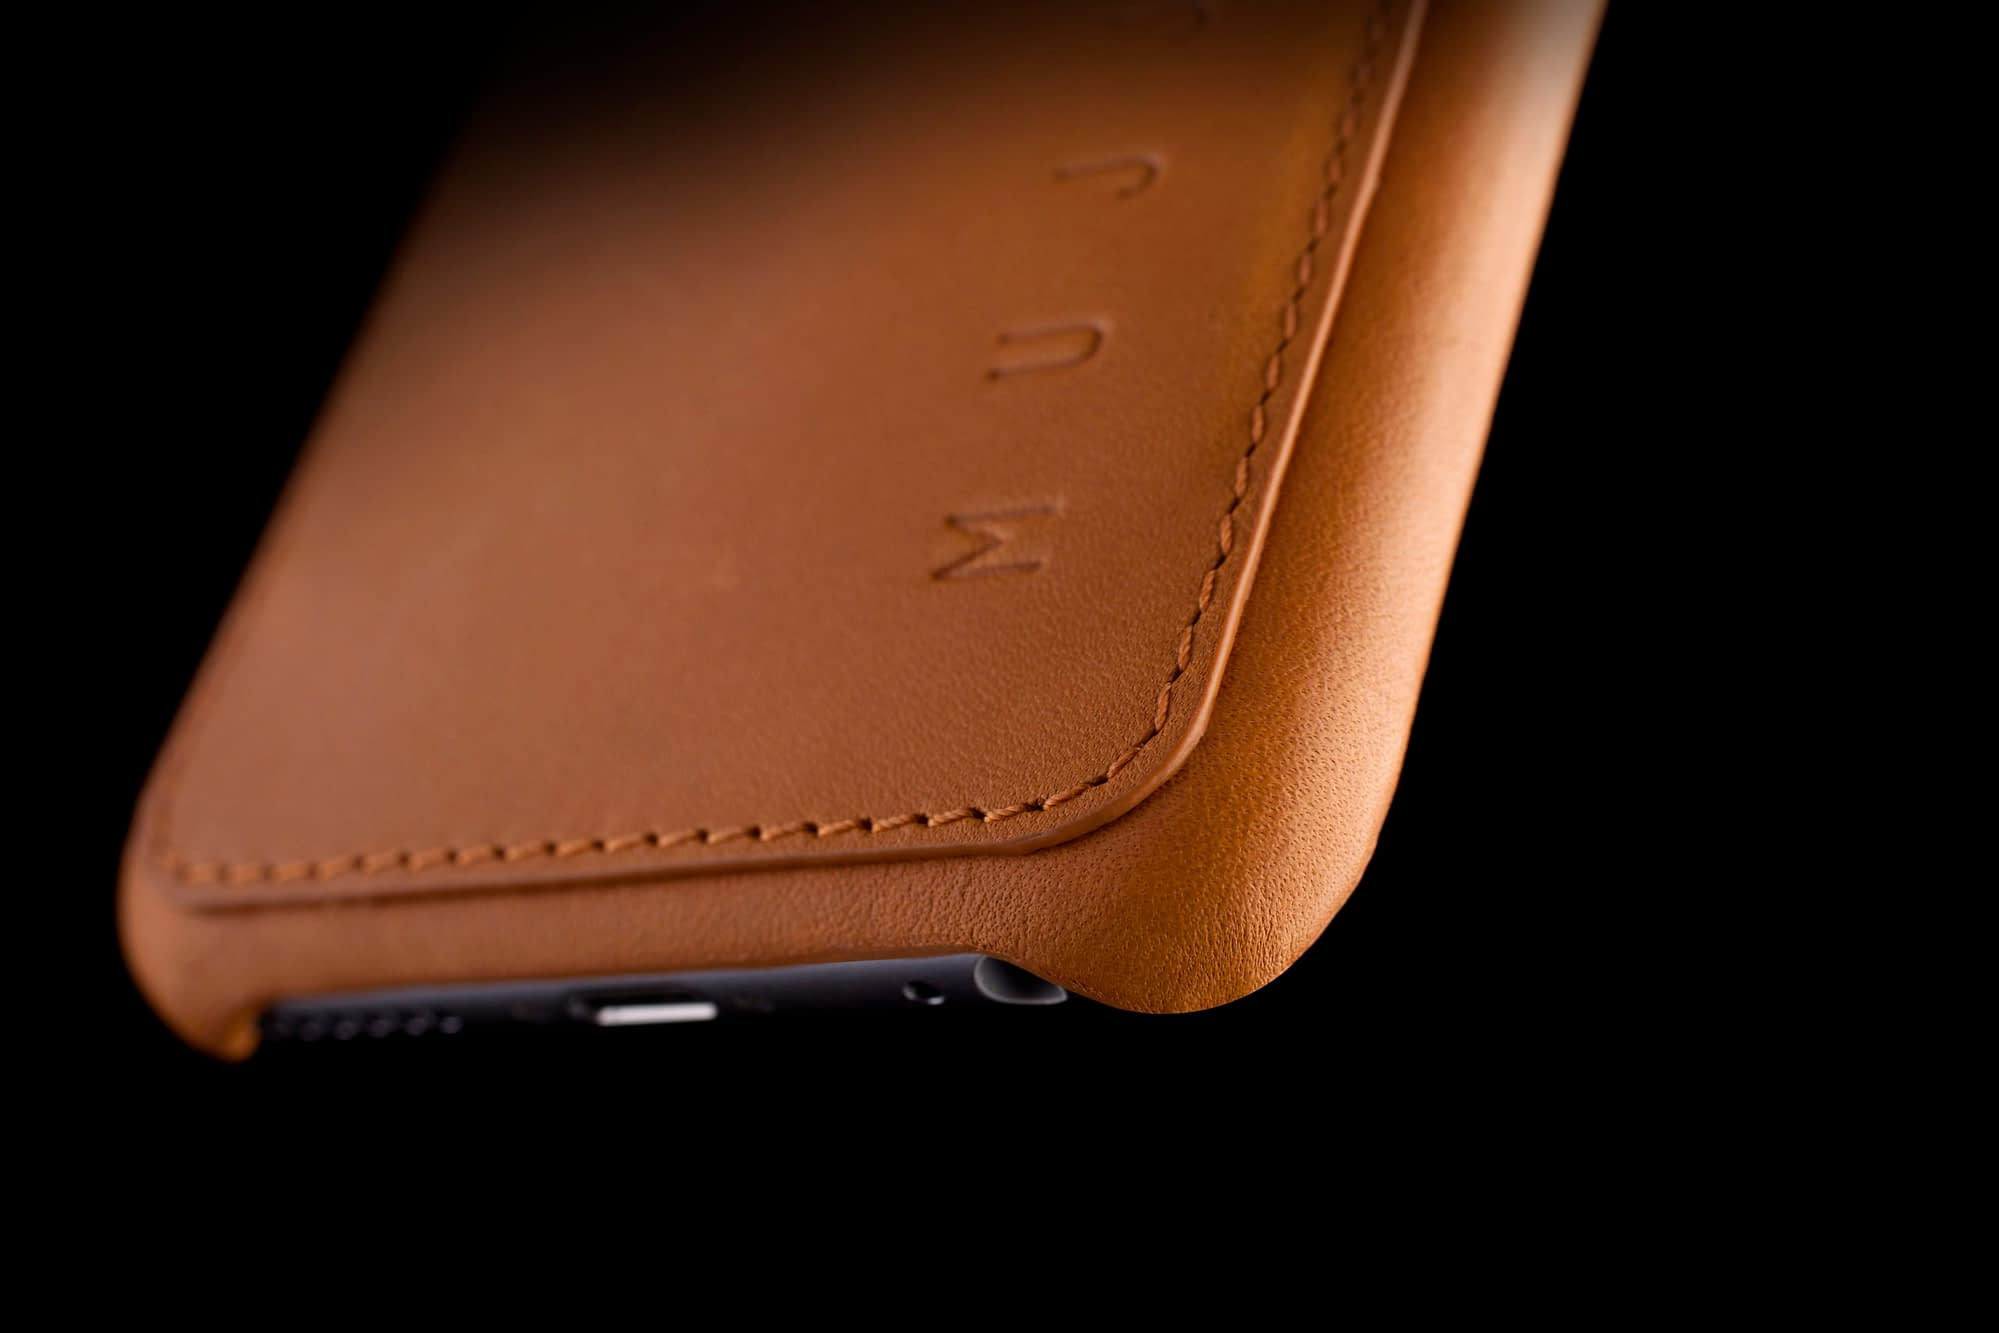 Leather Wallet Case for iPhone 6 Tan Lifestyle 007